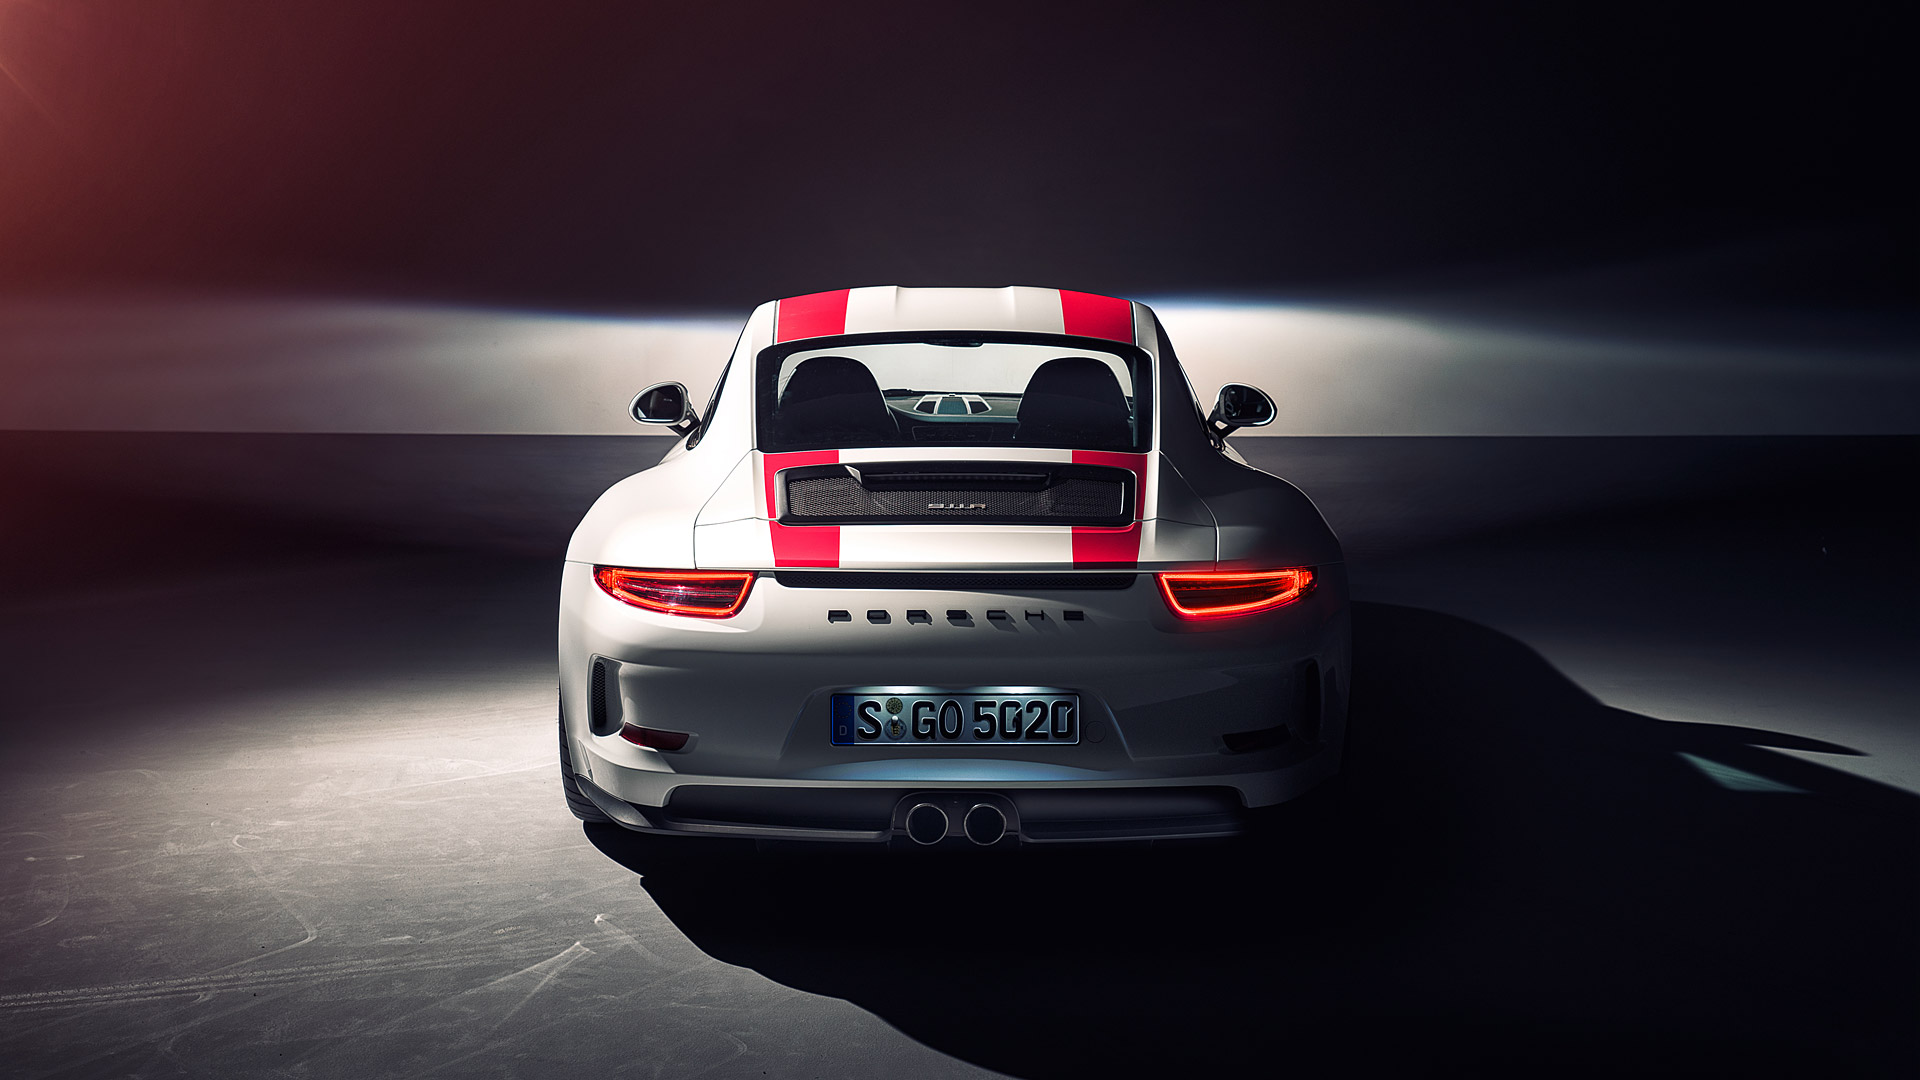 2017 Porsche 911 R HD Wallpaper   gearheadwallpapers 1920x1080